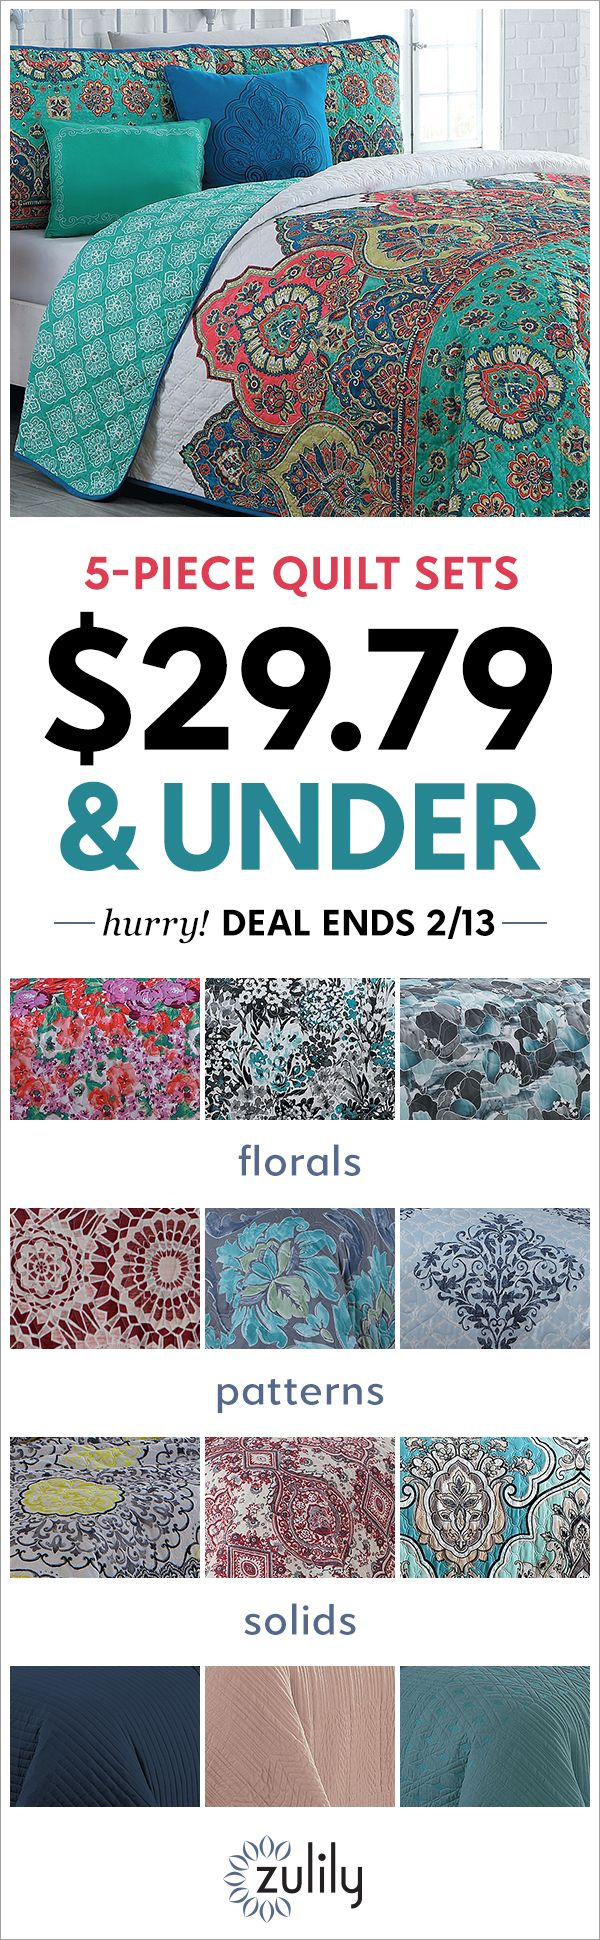 Sign up to shop 5-piece quilt sets $29.79 and under. Contemporary designs for a warmer, cozier place to slumber. Deal ends 2/13.